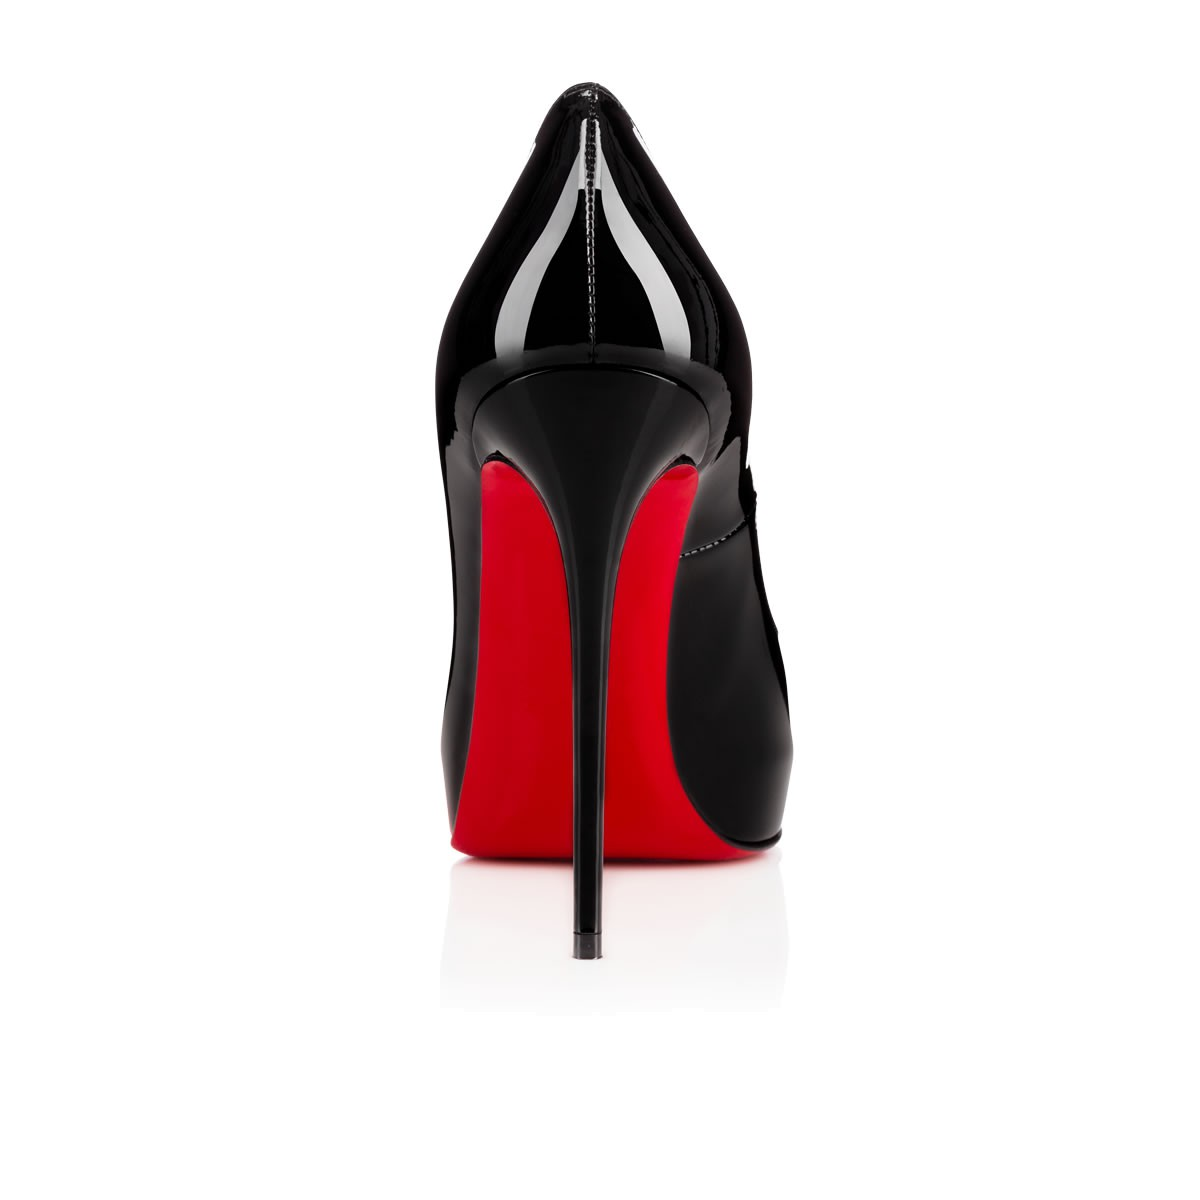 new product 00ac6 7bf21 New Very Prive 120mm Black/Red Patent Leather